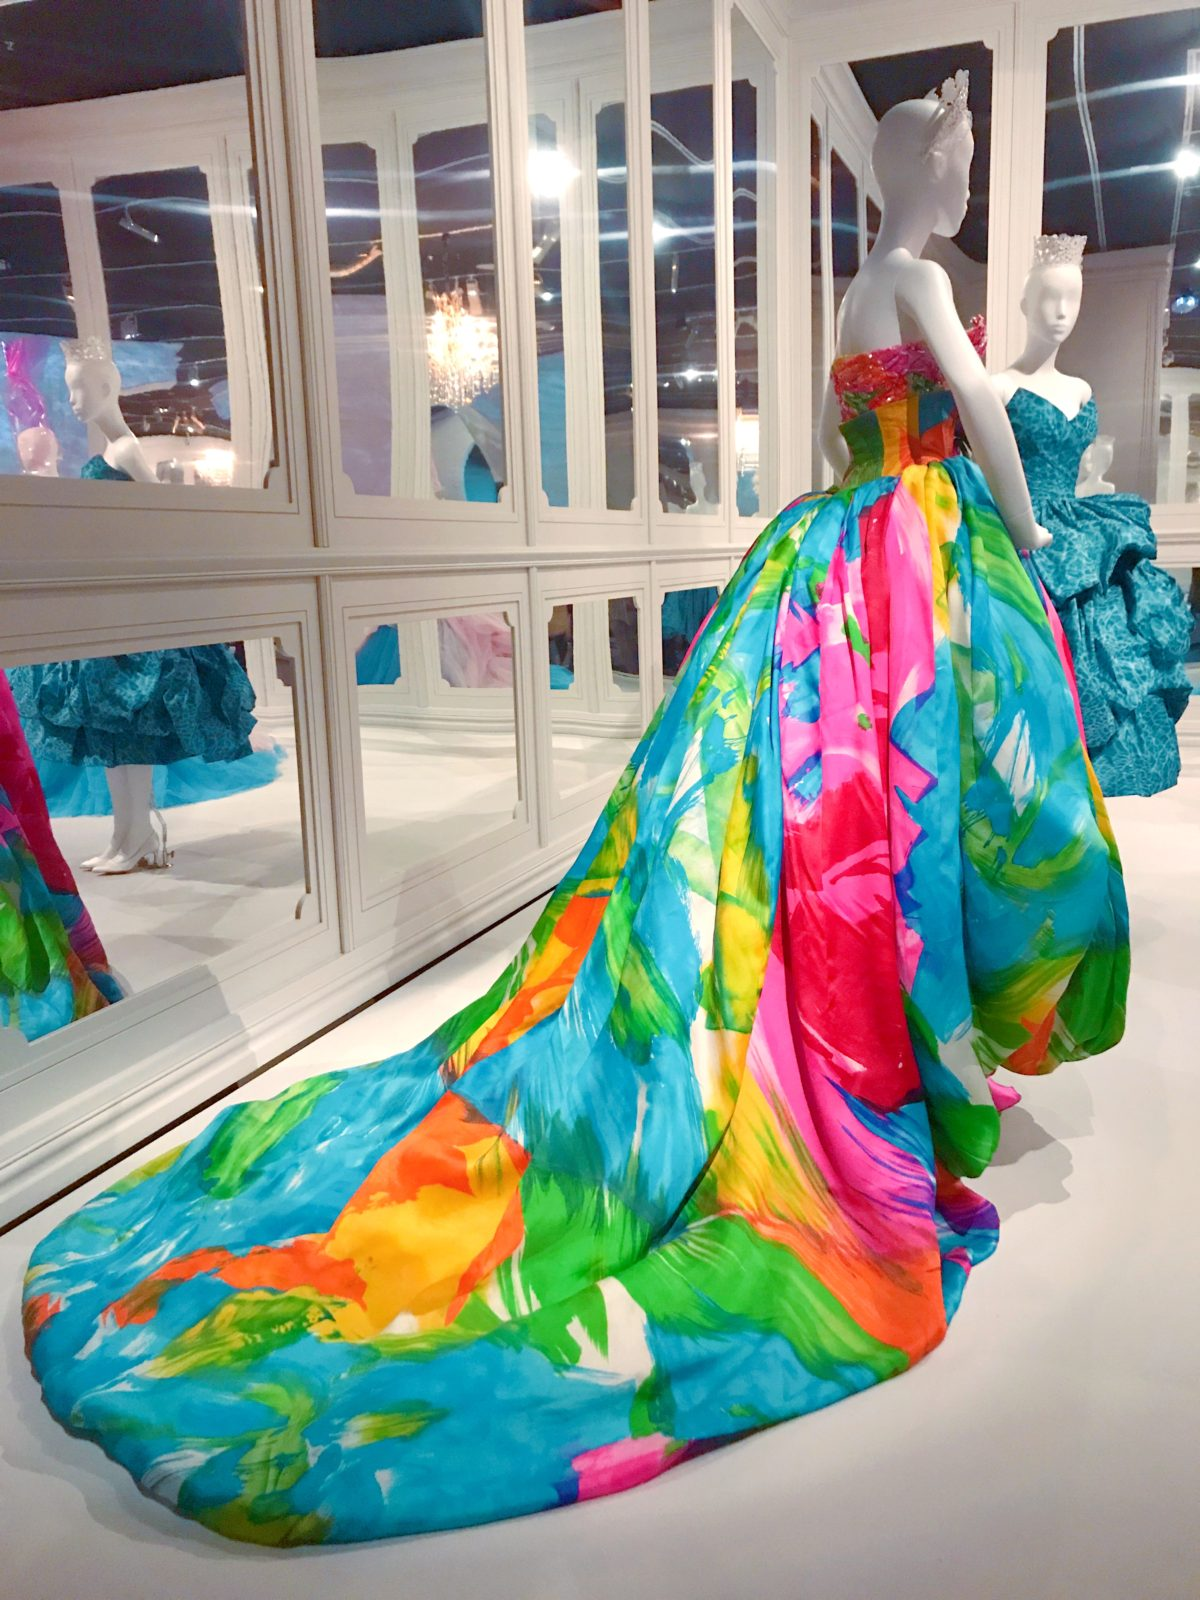 'The House of Dior' Exhibition | National Gallery of Victoria